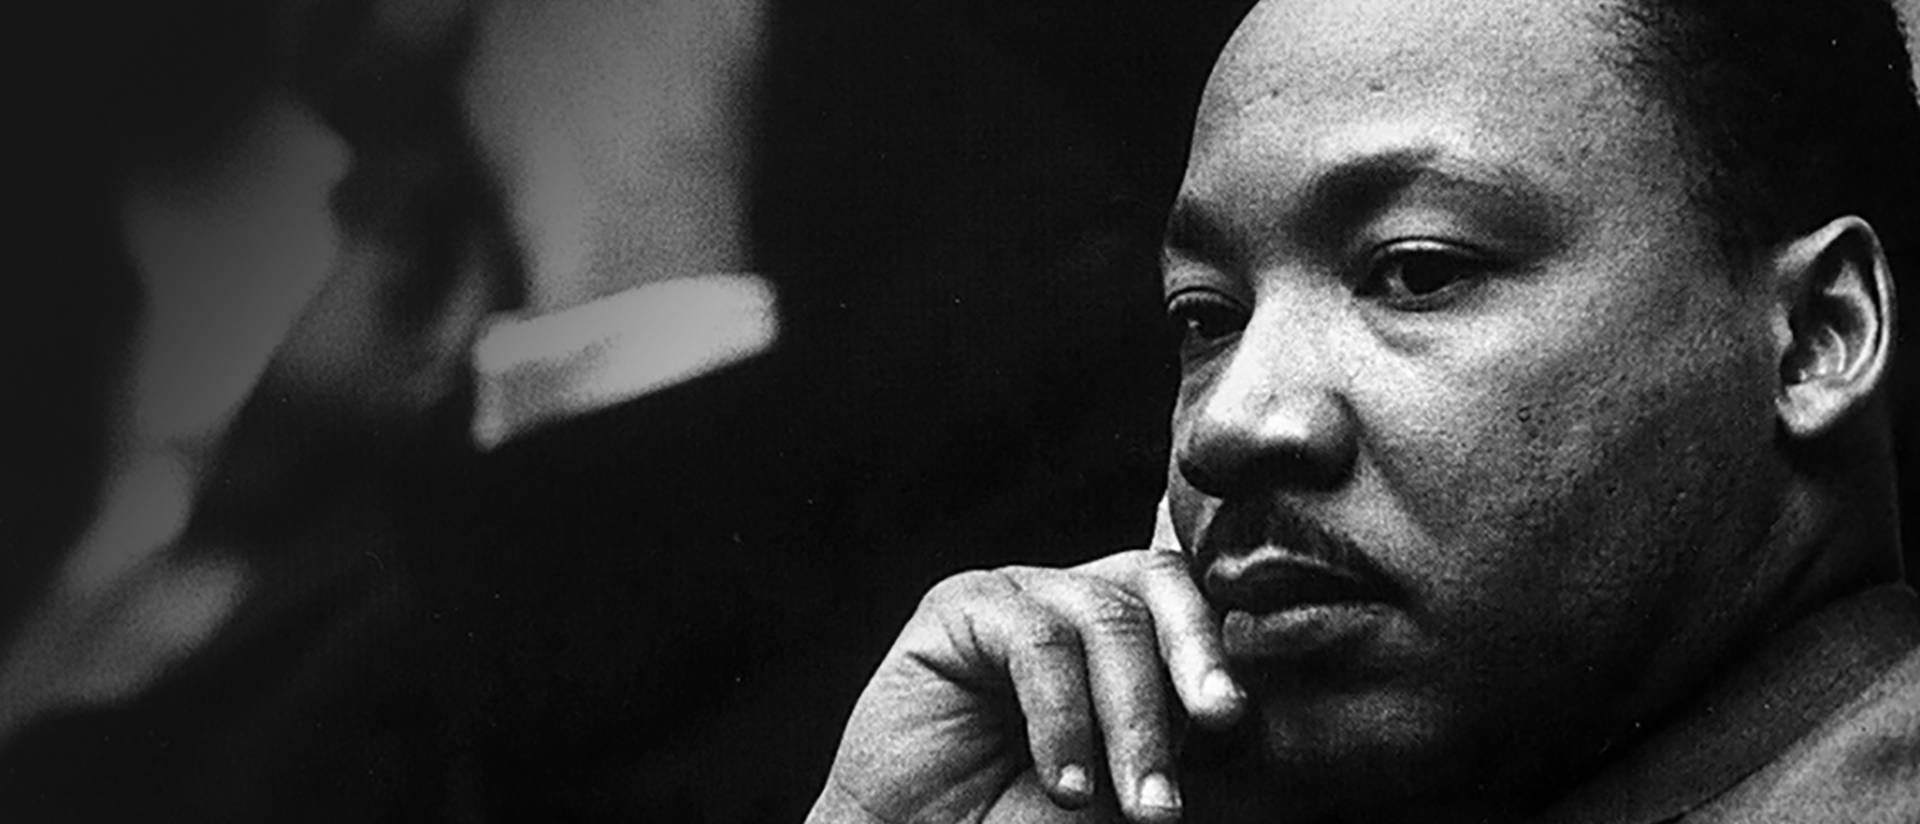 UW-Eau Claire observes Martin Luther King Jr. Day April 19 with a day of service and an evening remembrance event.